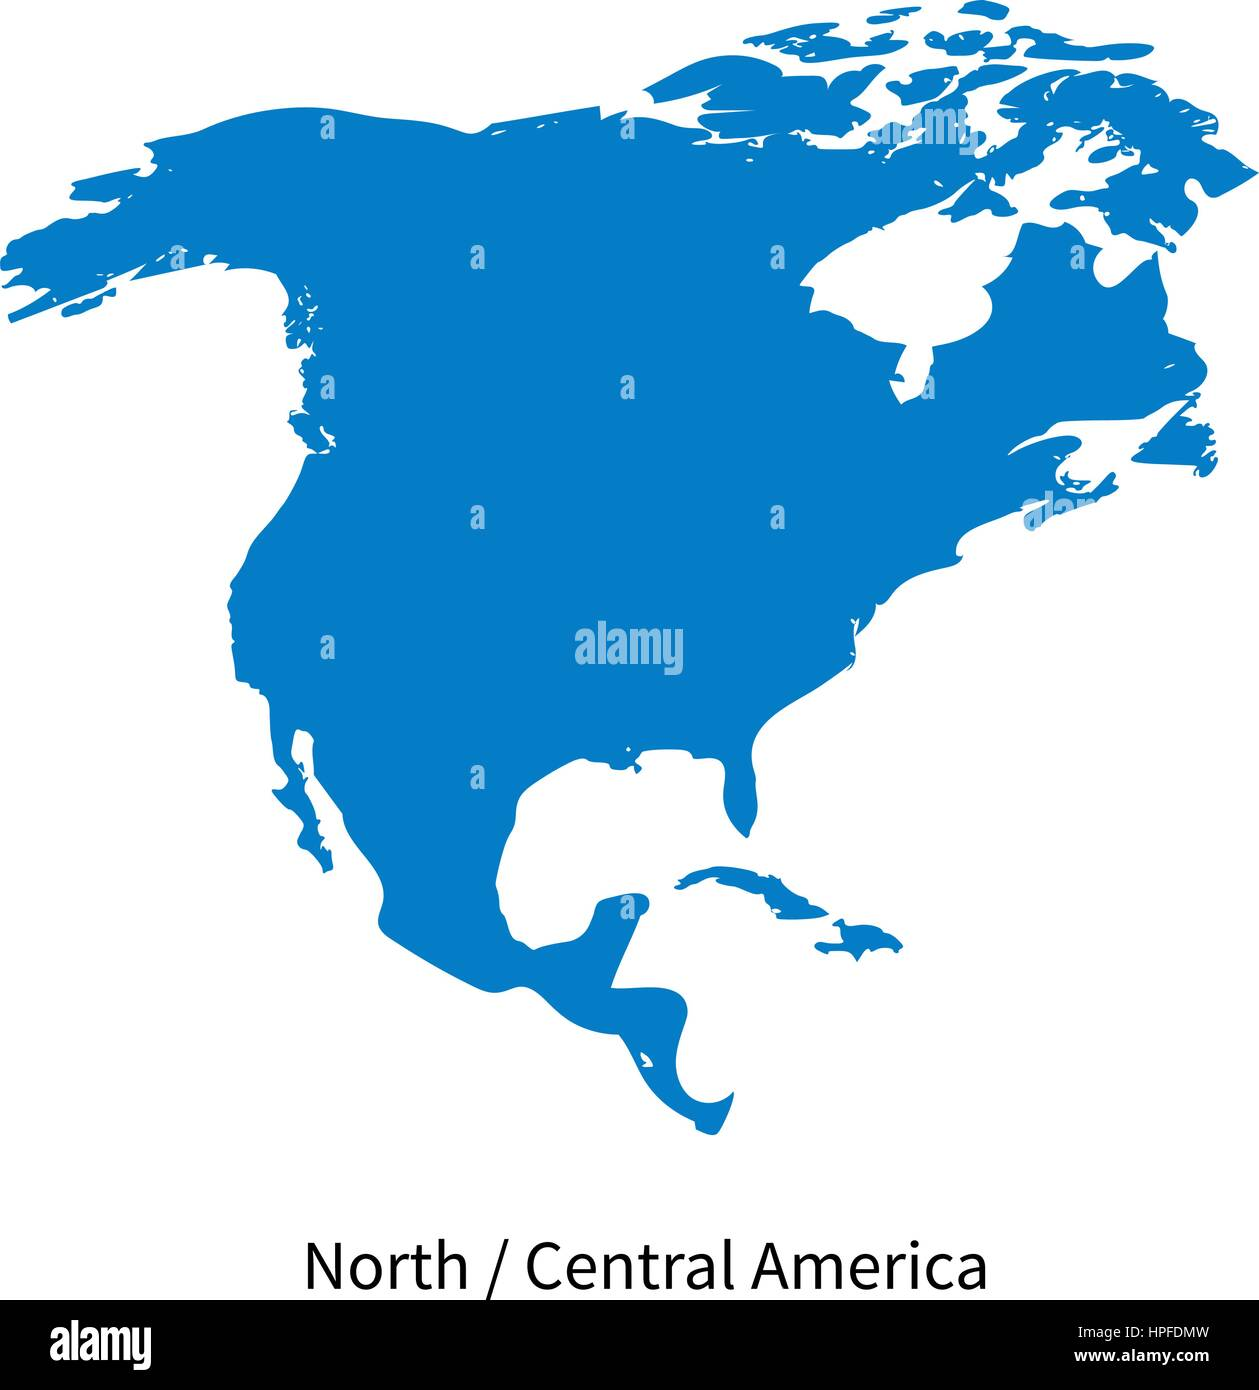 Detailed vector map of North and Central America Region on white